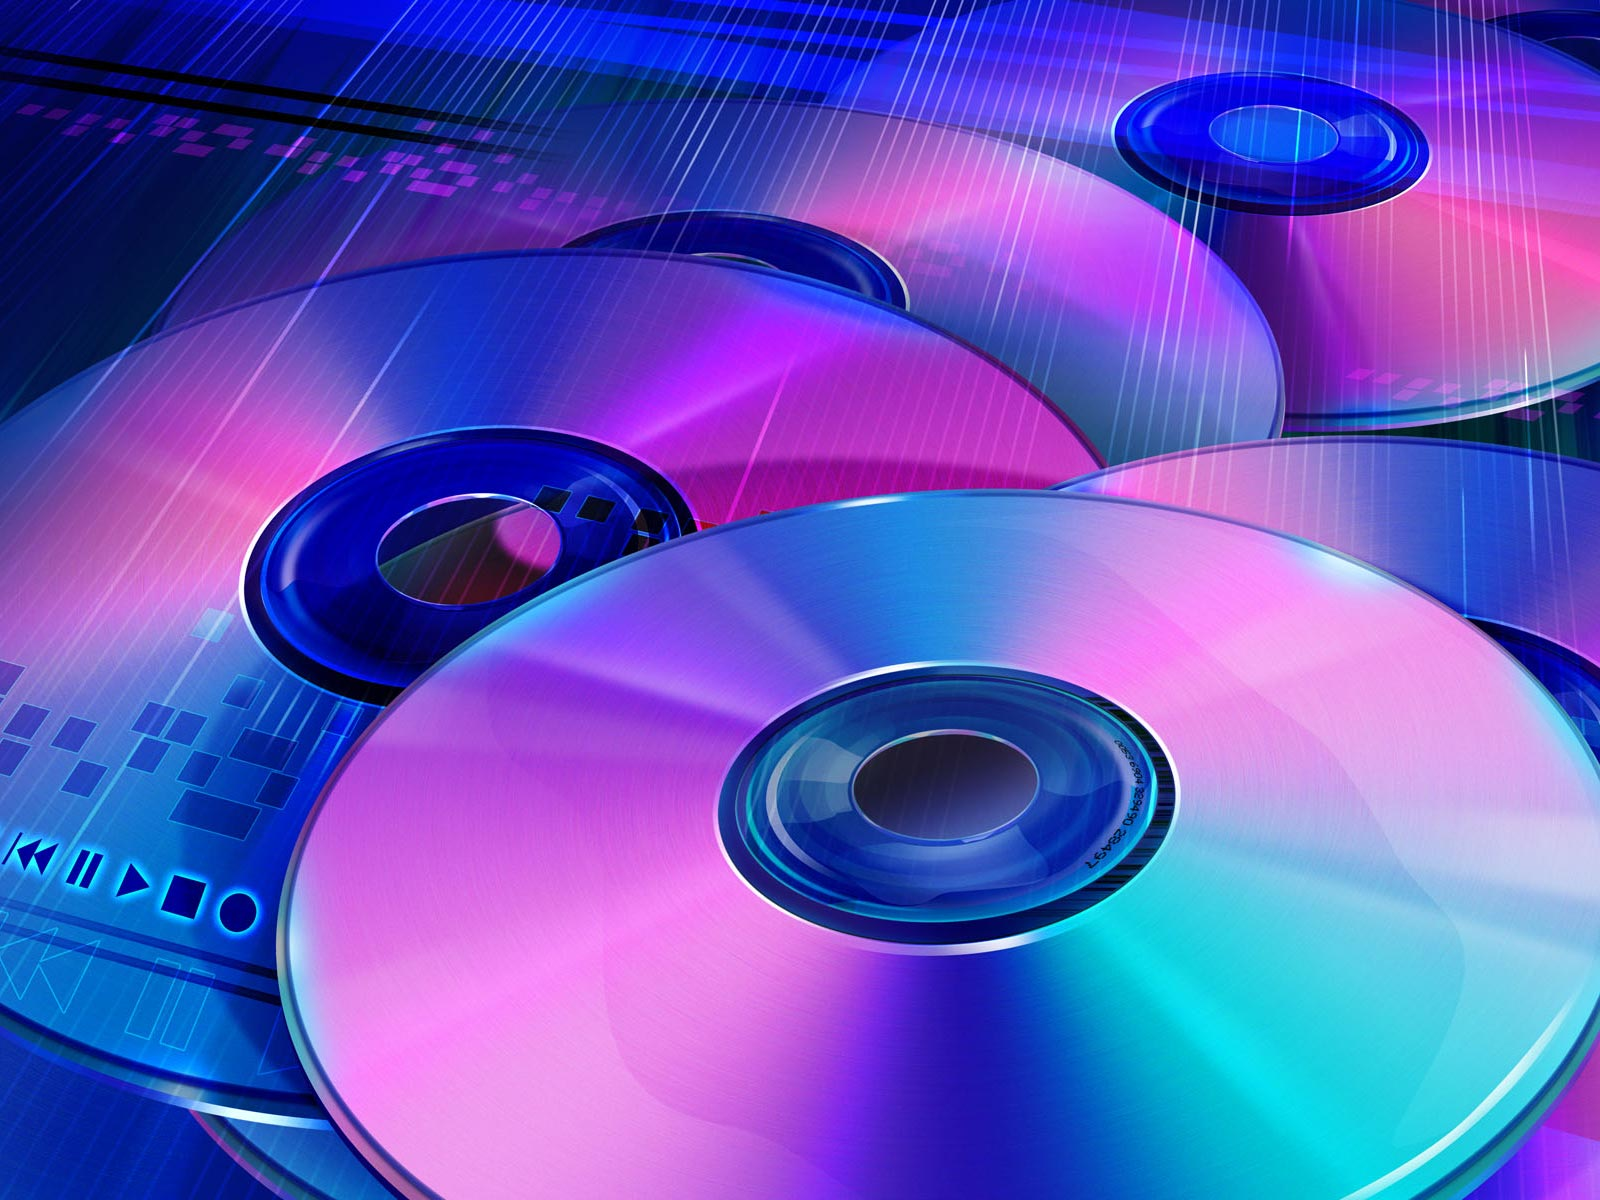 file cd dvd collections jpg wikimedia commons